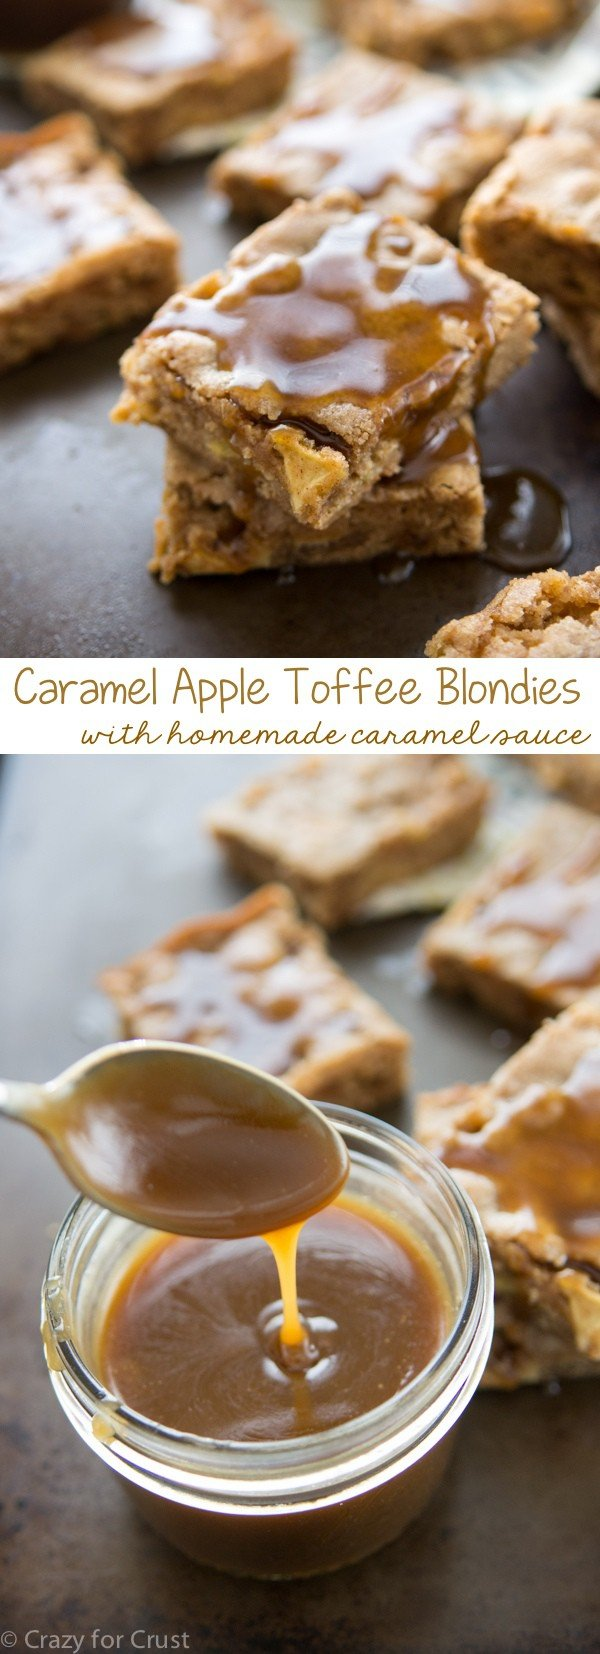 Caramel Apple Toffee Blondies with homemade caramel sauce